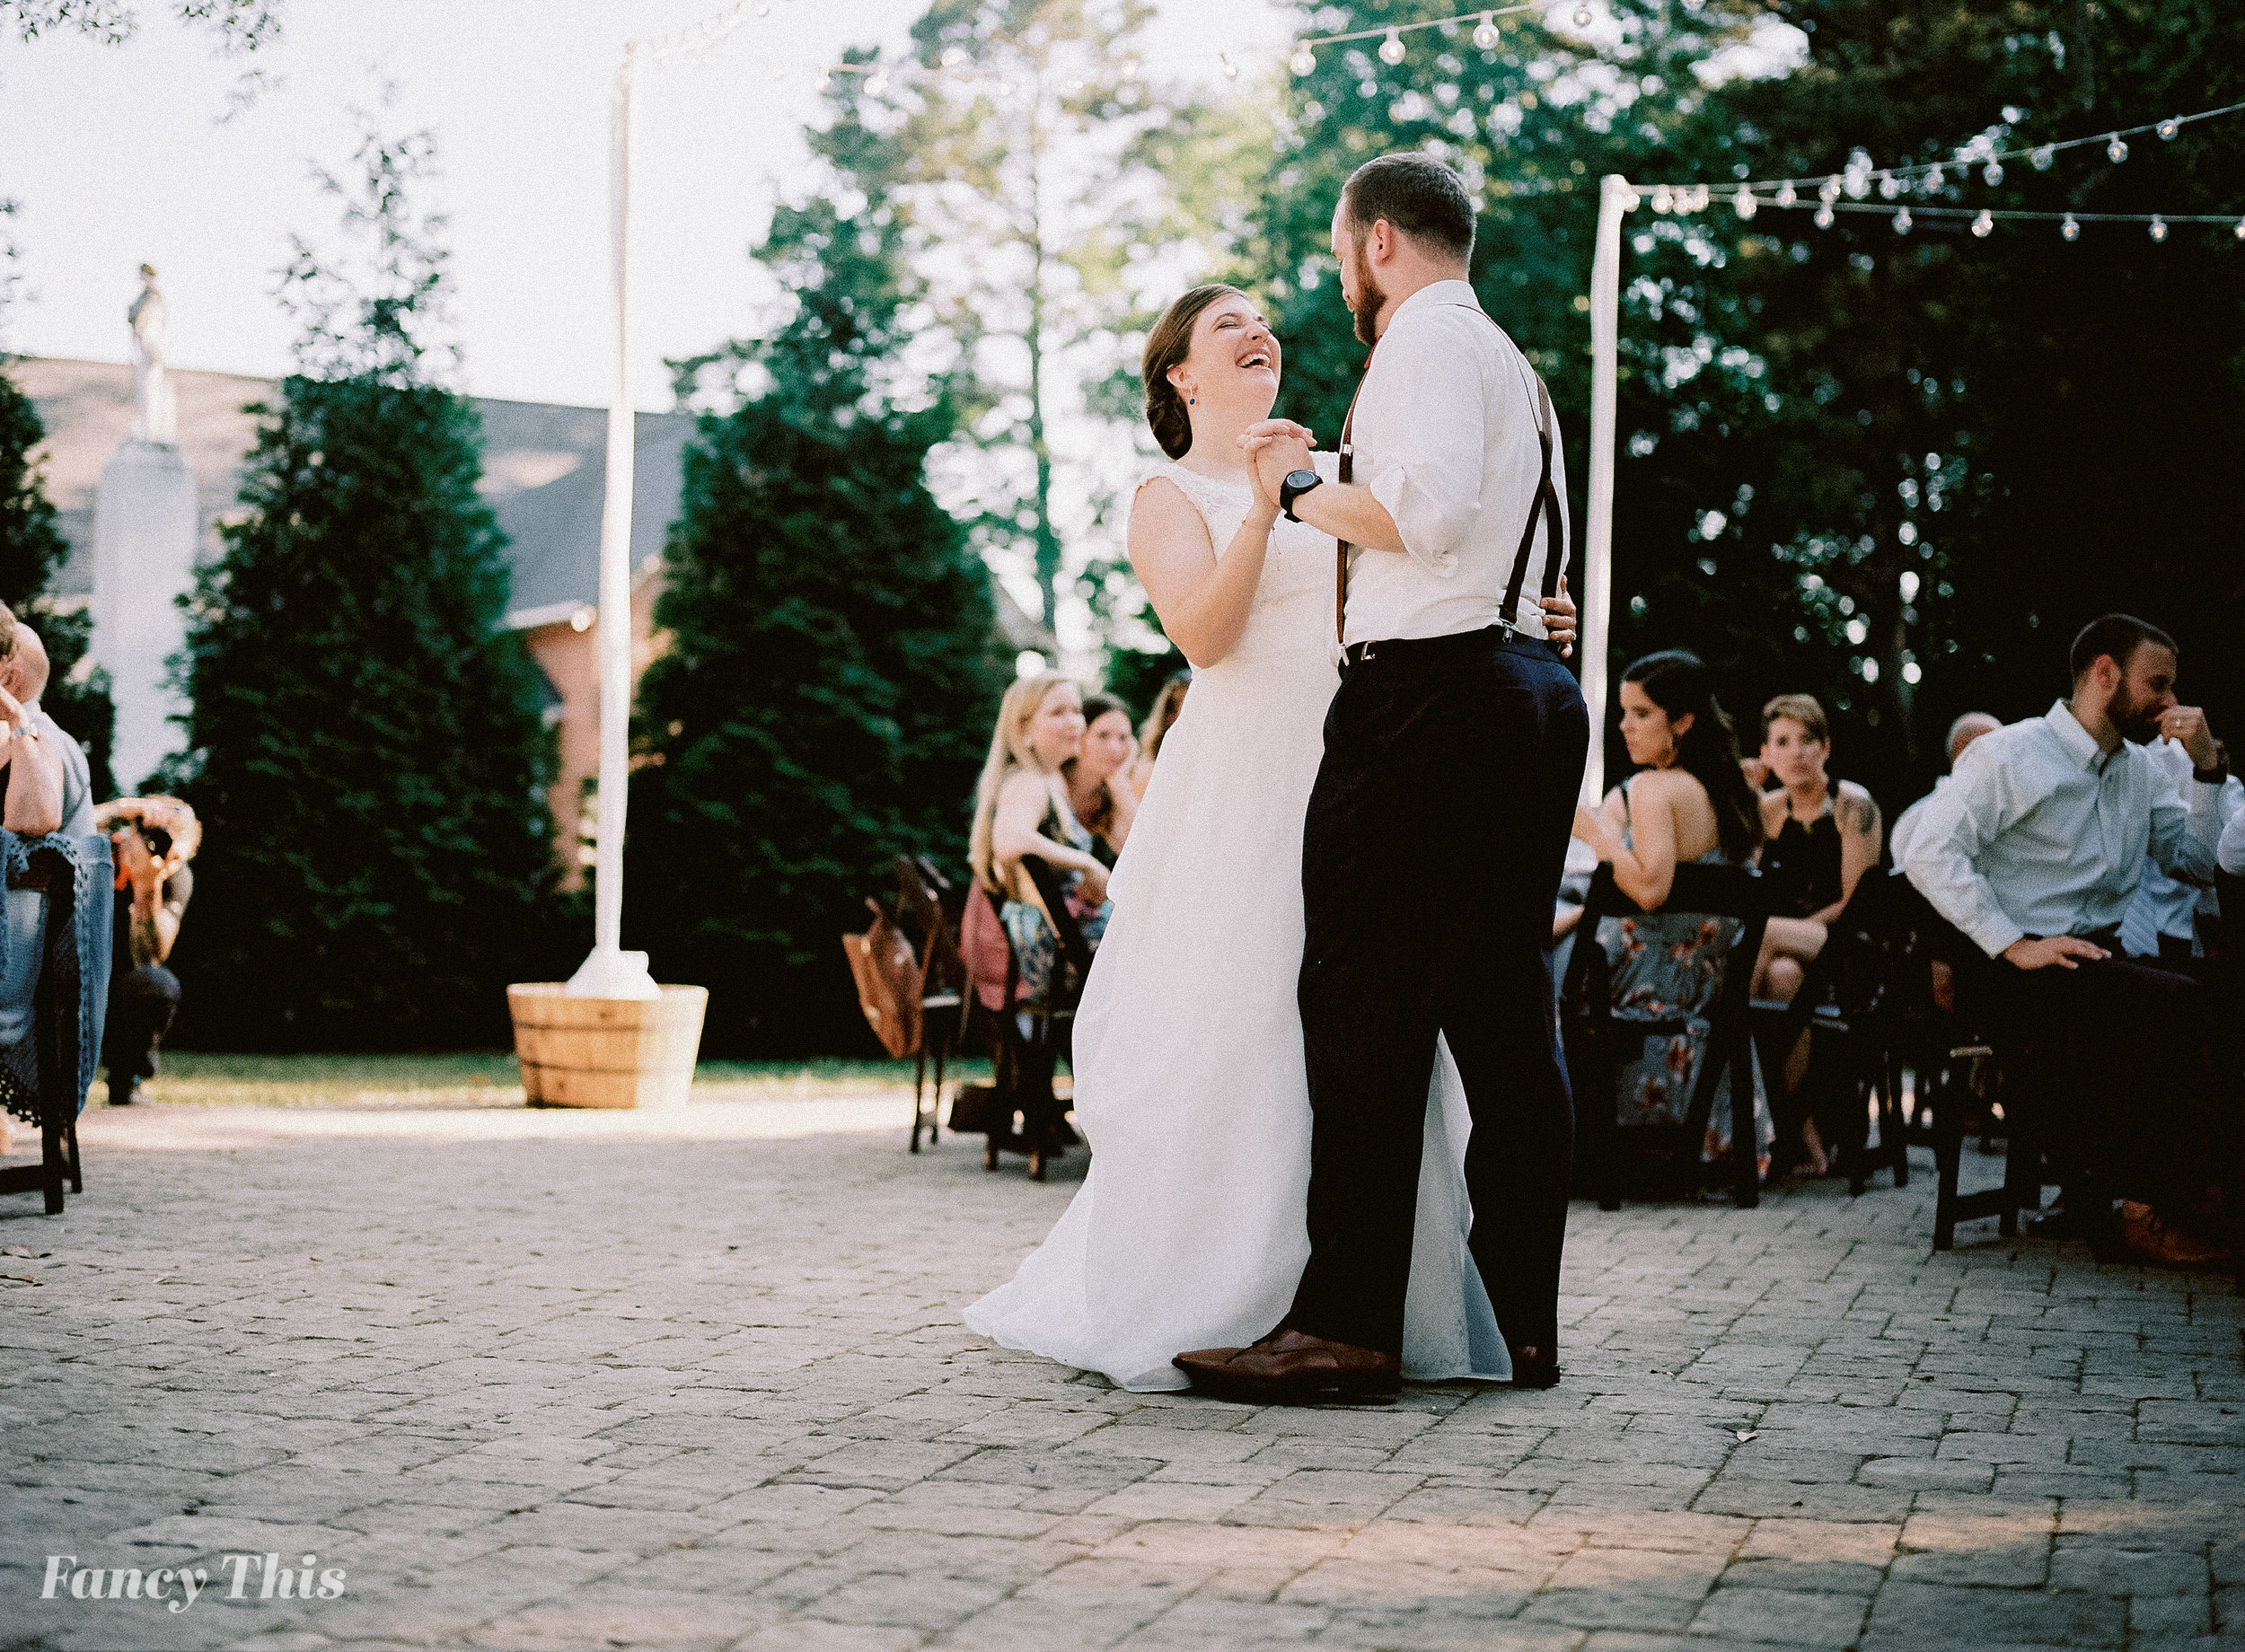 themimshousewedding_summerweddinginhollysprings_fancythis-506.jpg